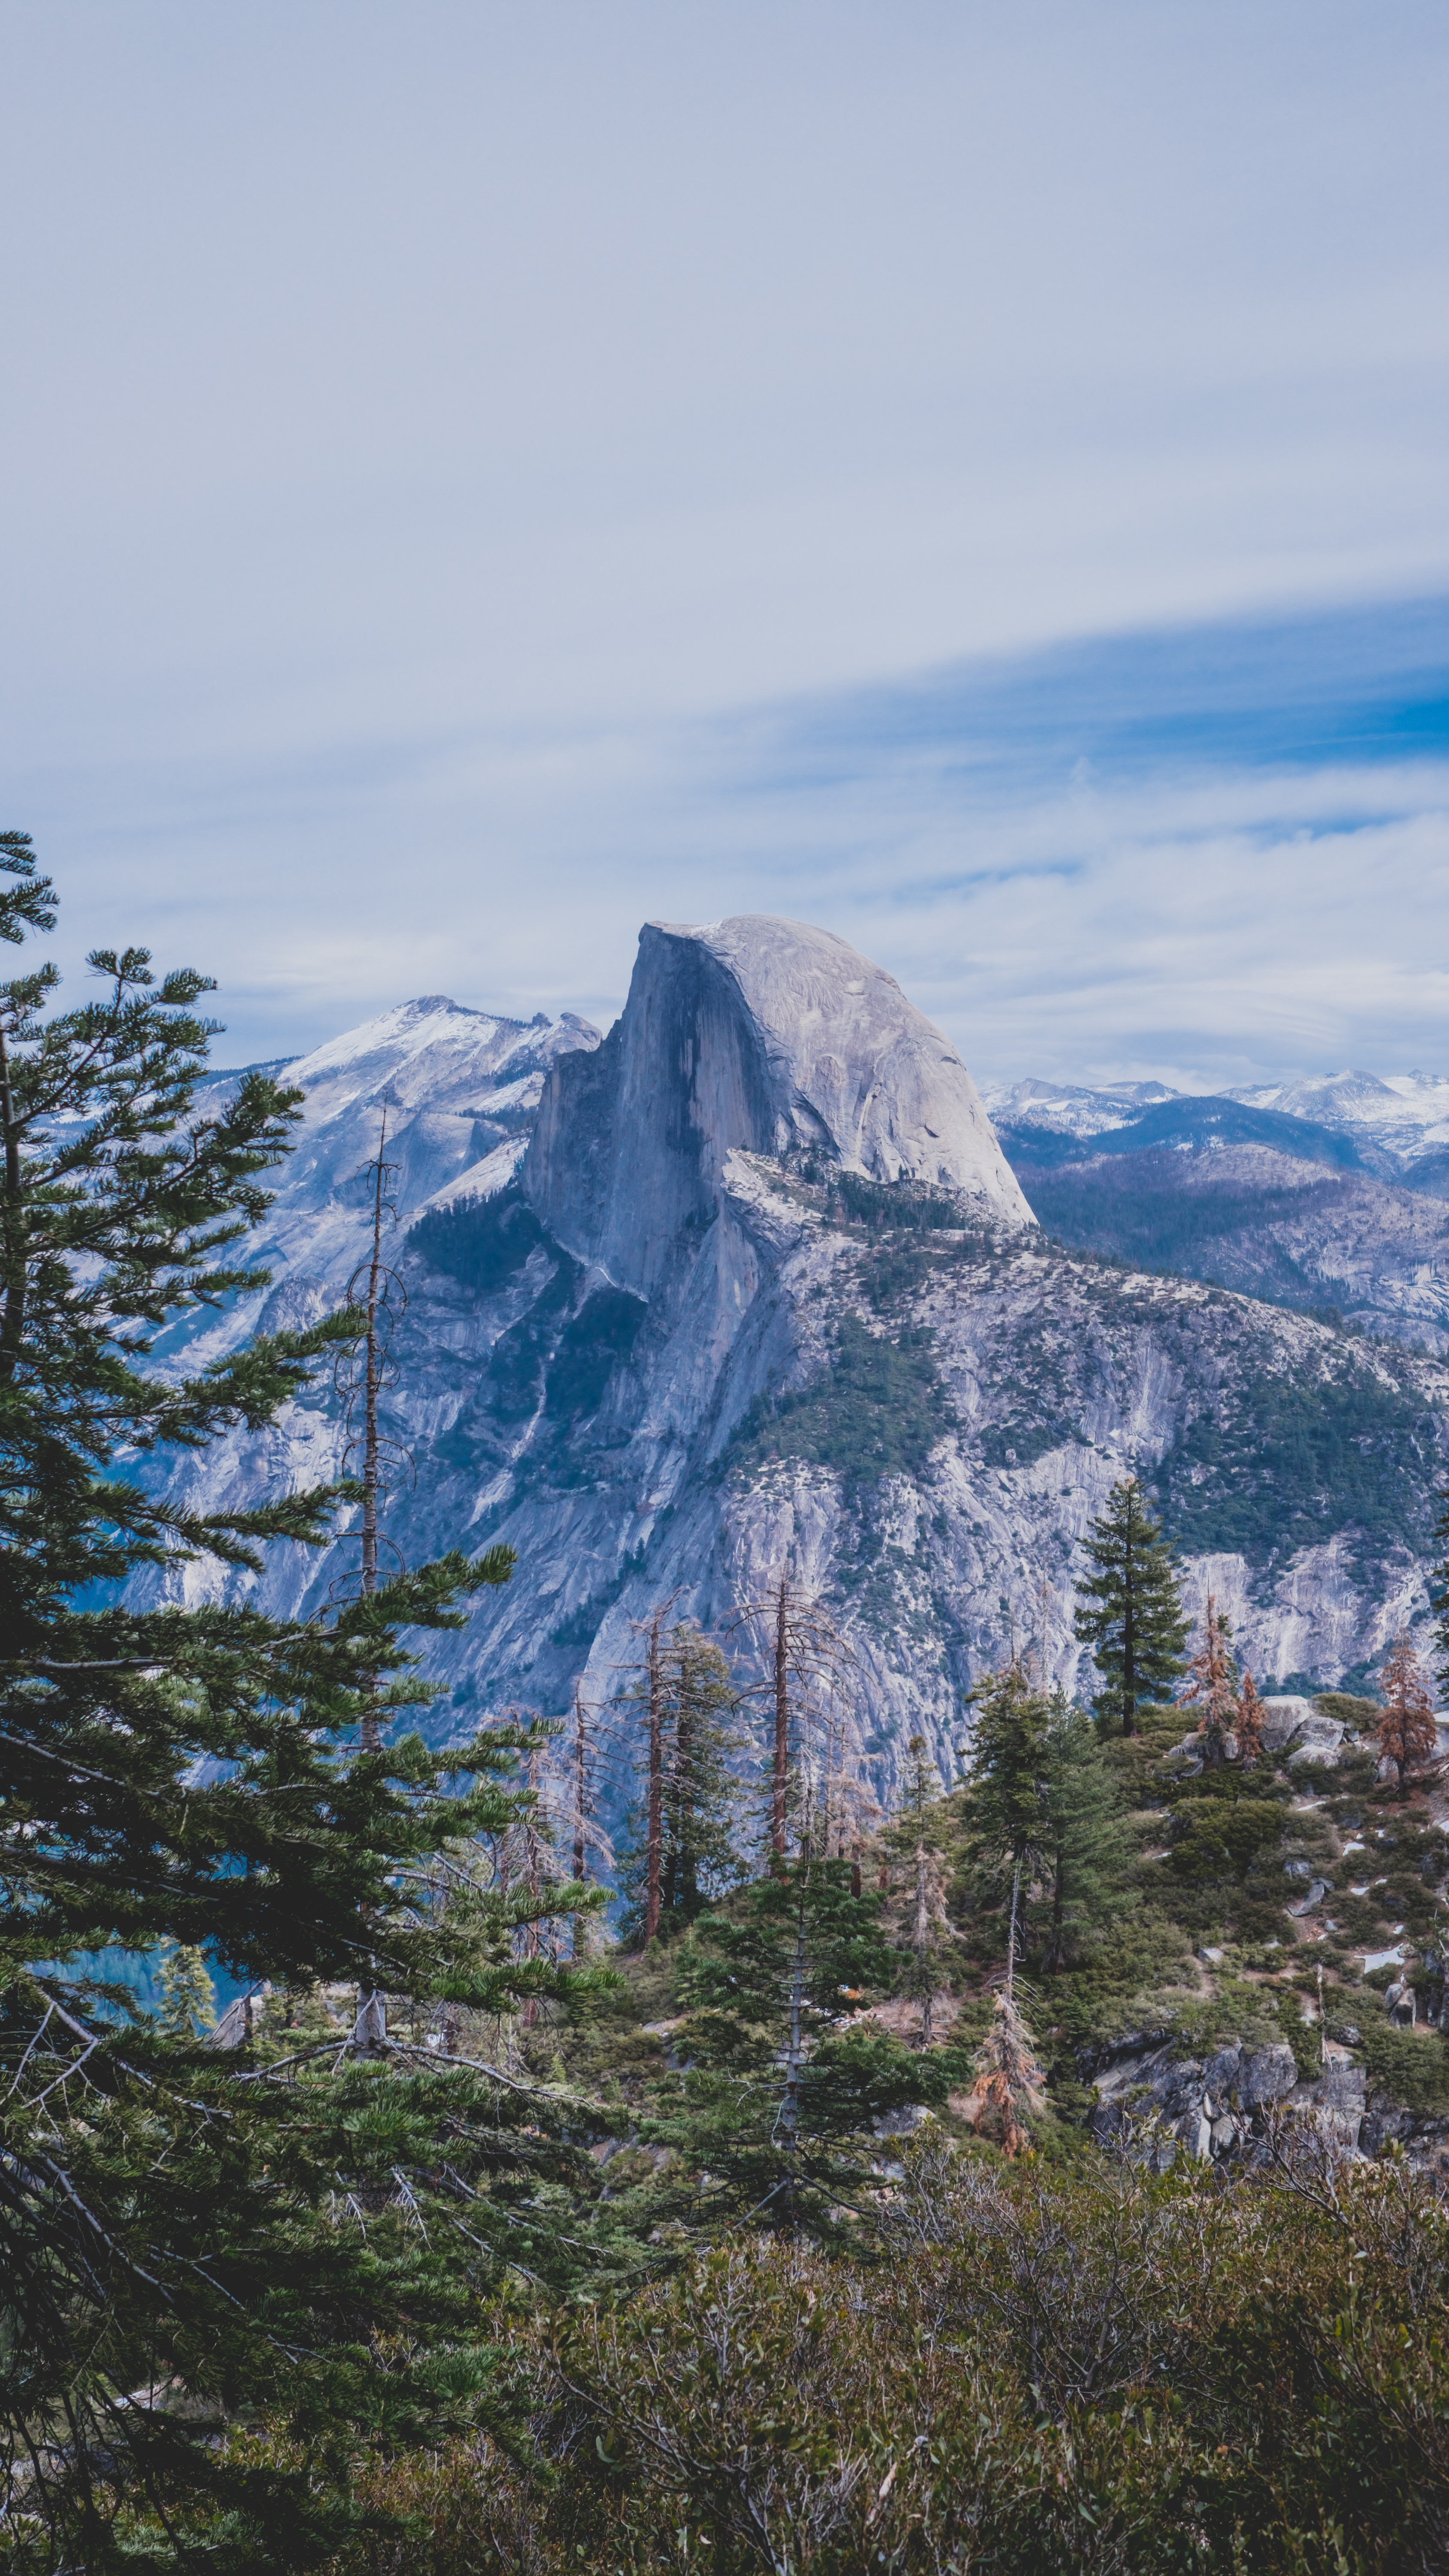 landscape photography of mountain and forest